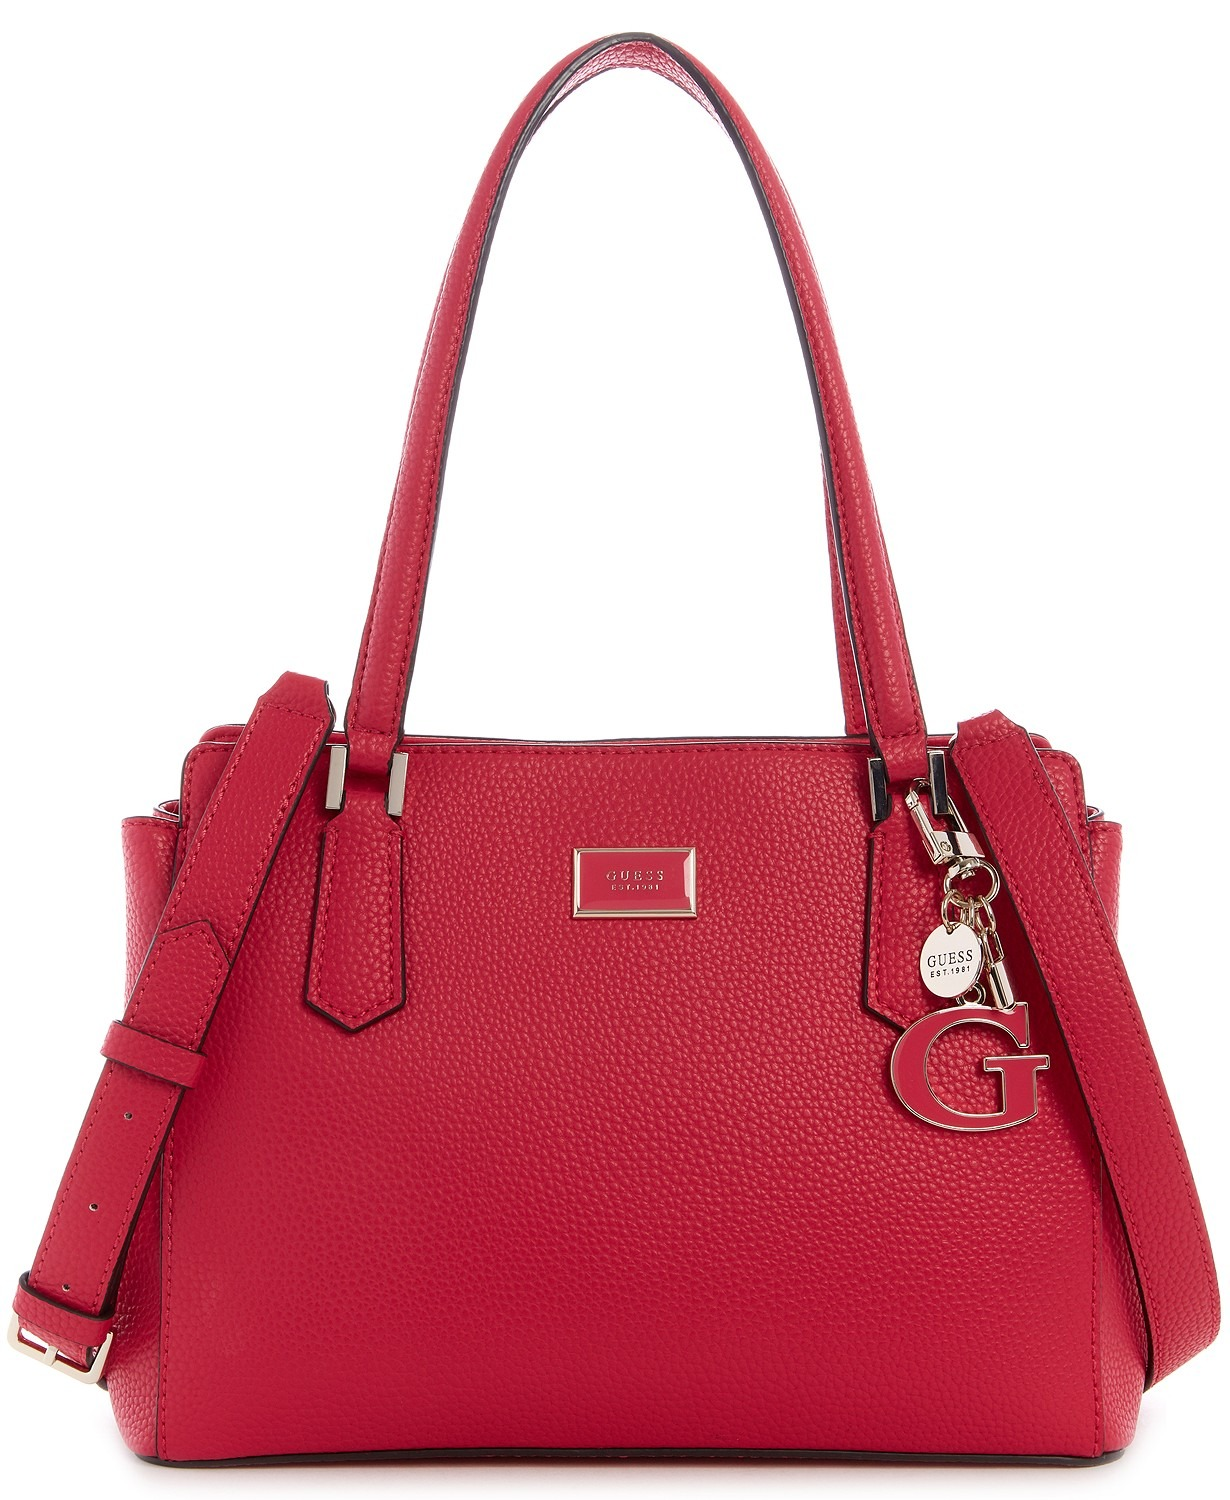 TÚI XÁCH GUESS ALESSI LUXURY SATCHEL, PINK / PALE GOLD